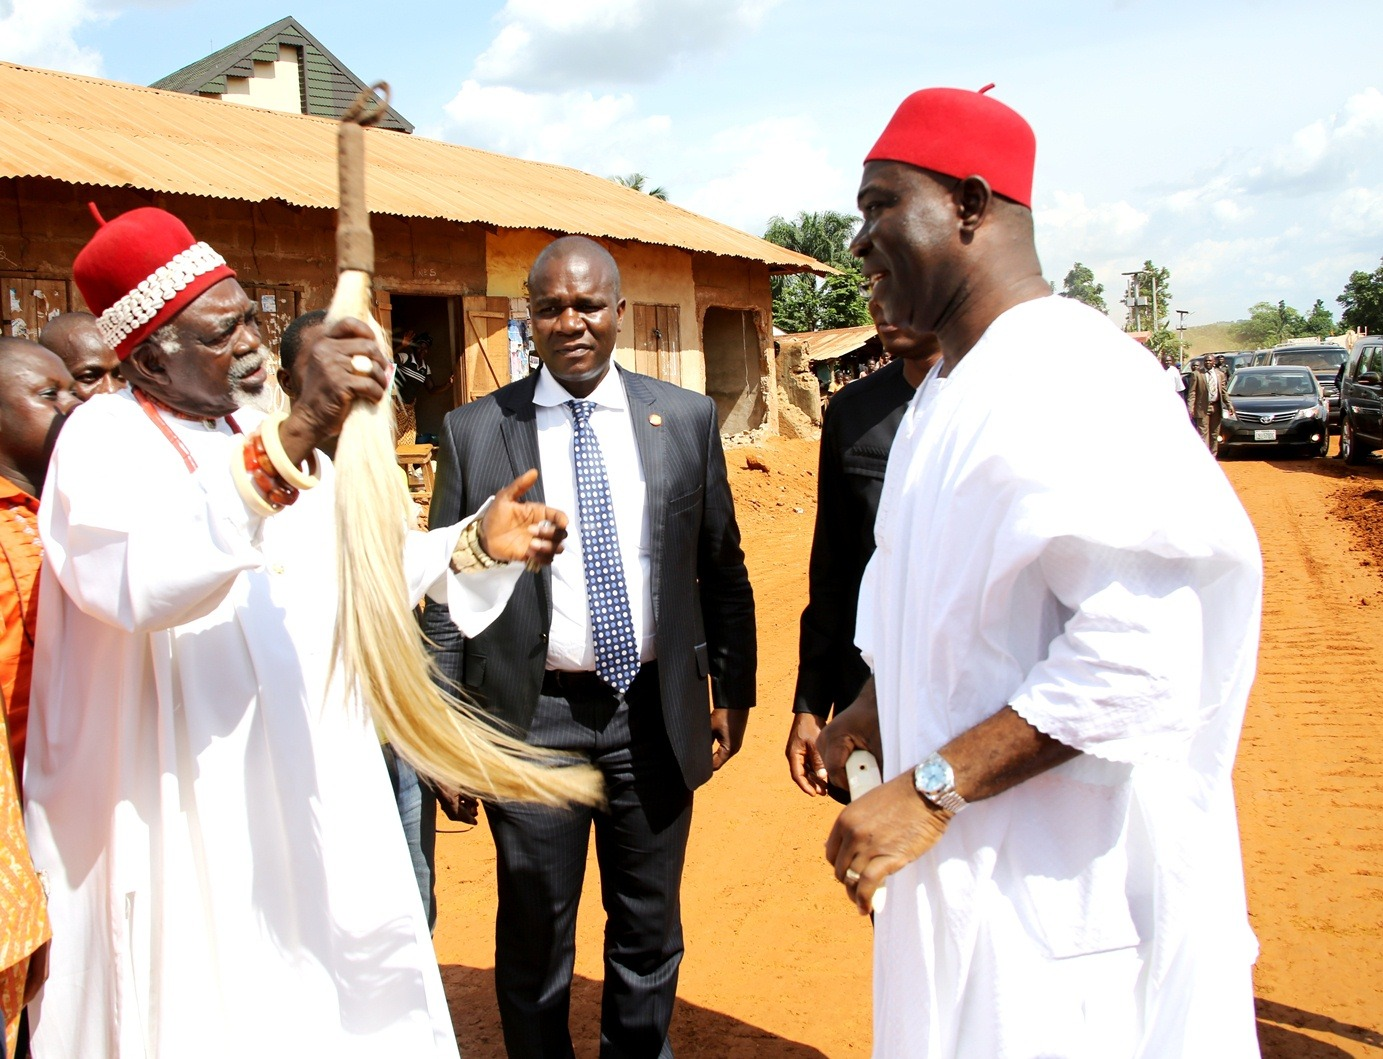 The Deputy President of the Senate, Chief Ike Ekweremadu being welcomed to Oduma by the Chairman, Traditional Rulers Council, Aninri LGA, HRM, Igwe Godwin Nwanjoku the reception and conferment of chieftaincy title of Dike Eji Ejemba on the Deputy President of the Senate by Oduma Community, Aninri Local Government Area, Enugu State at the weekend. PHOTO: OFFICE OF THE DSP